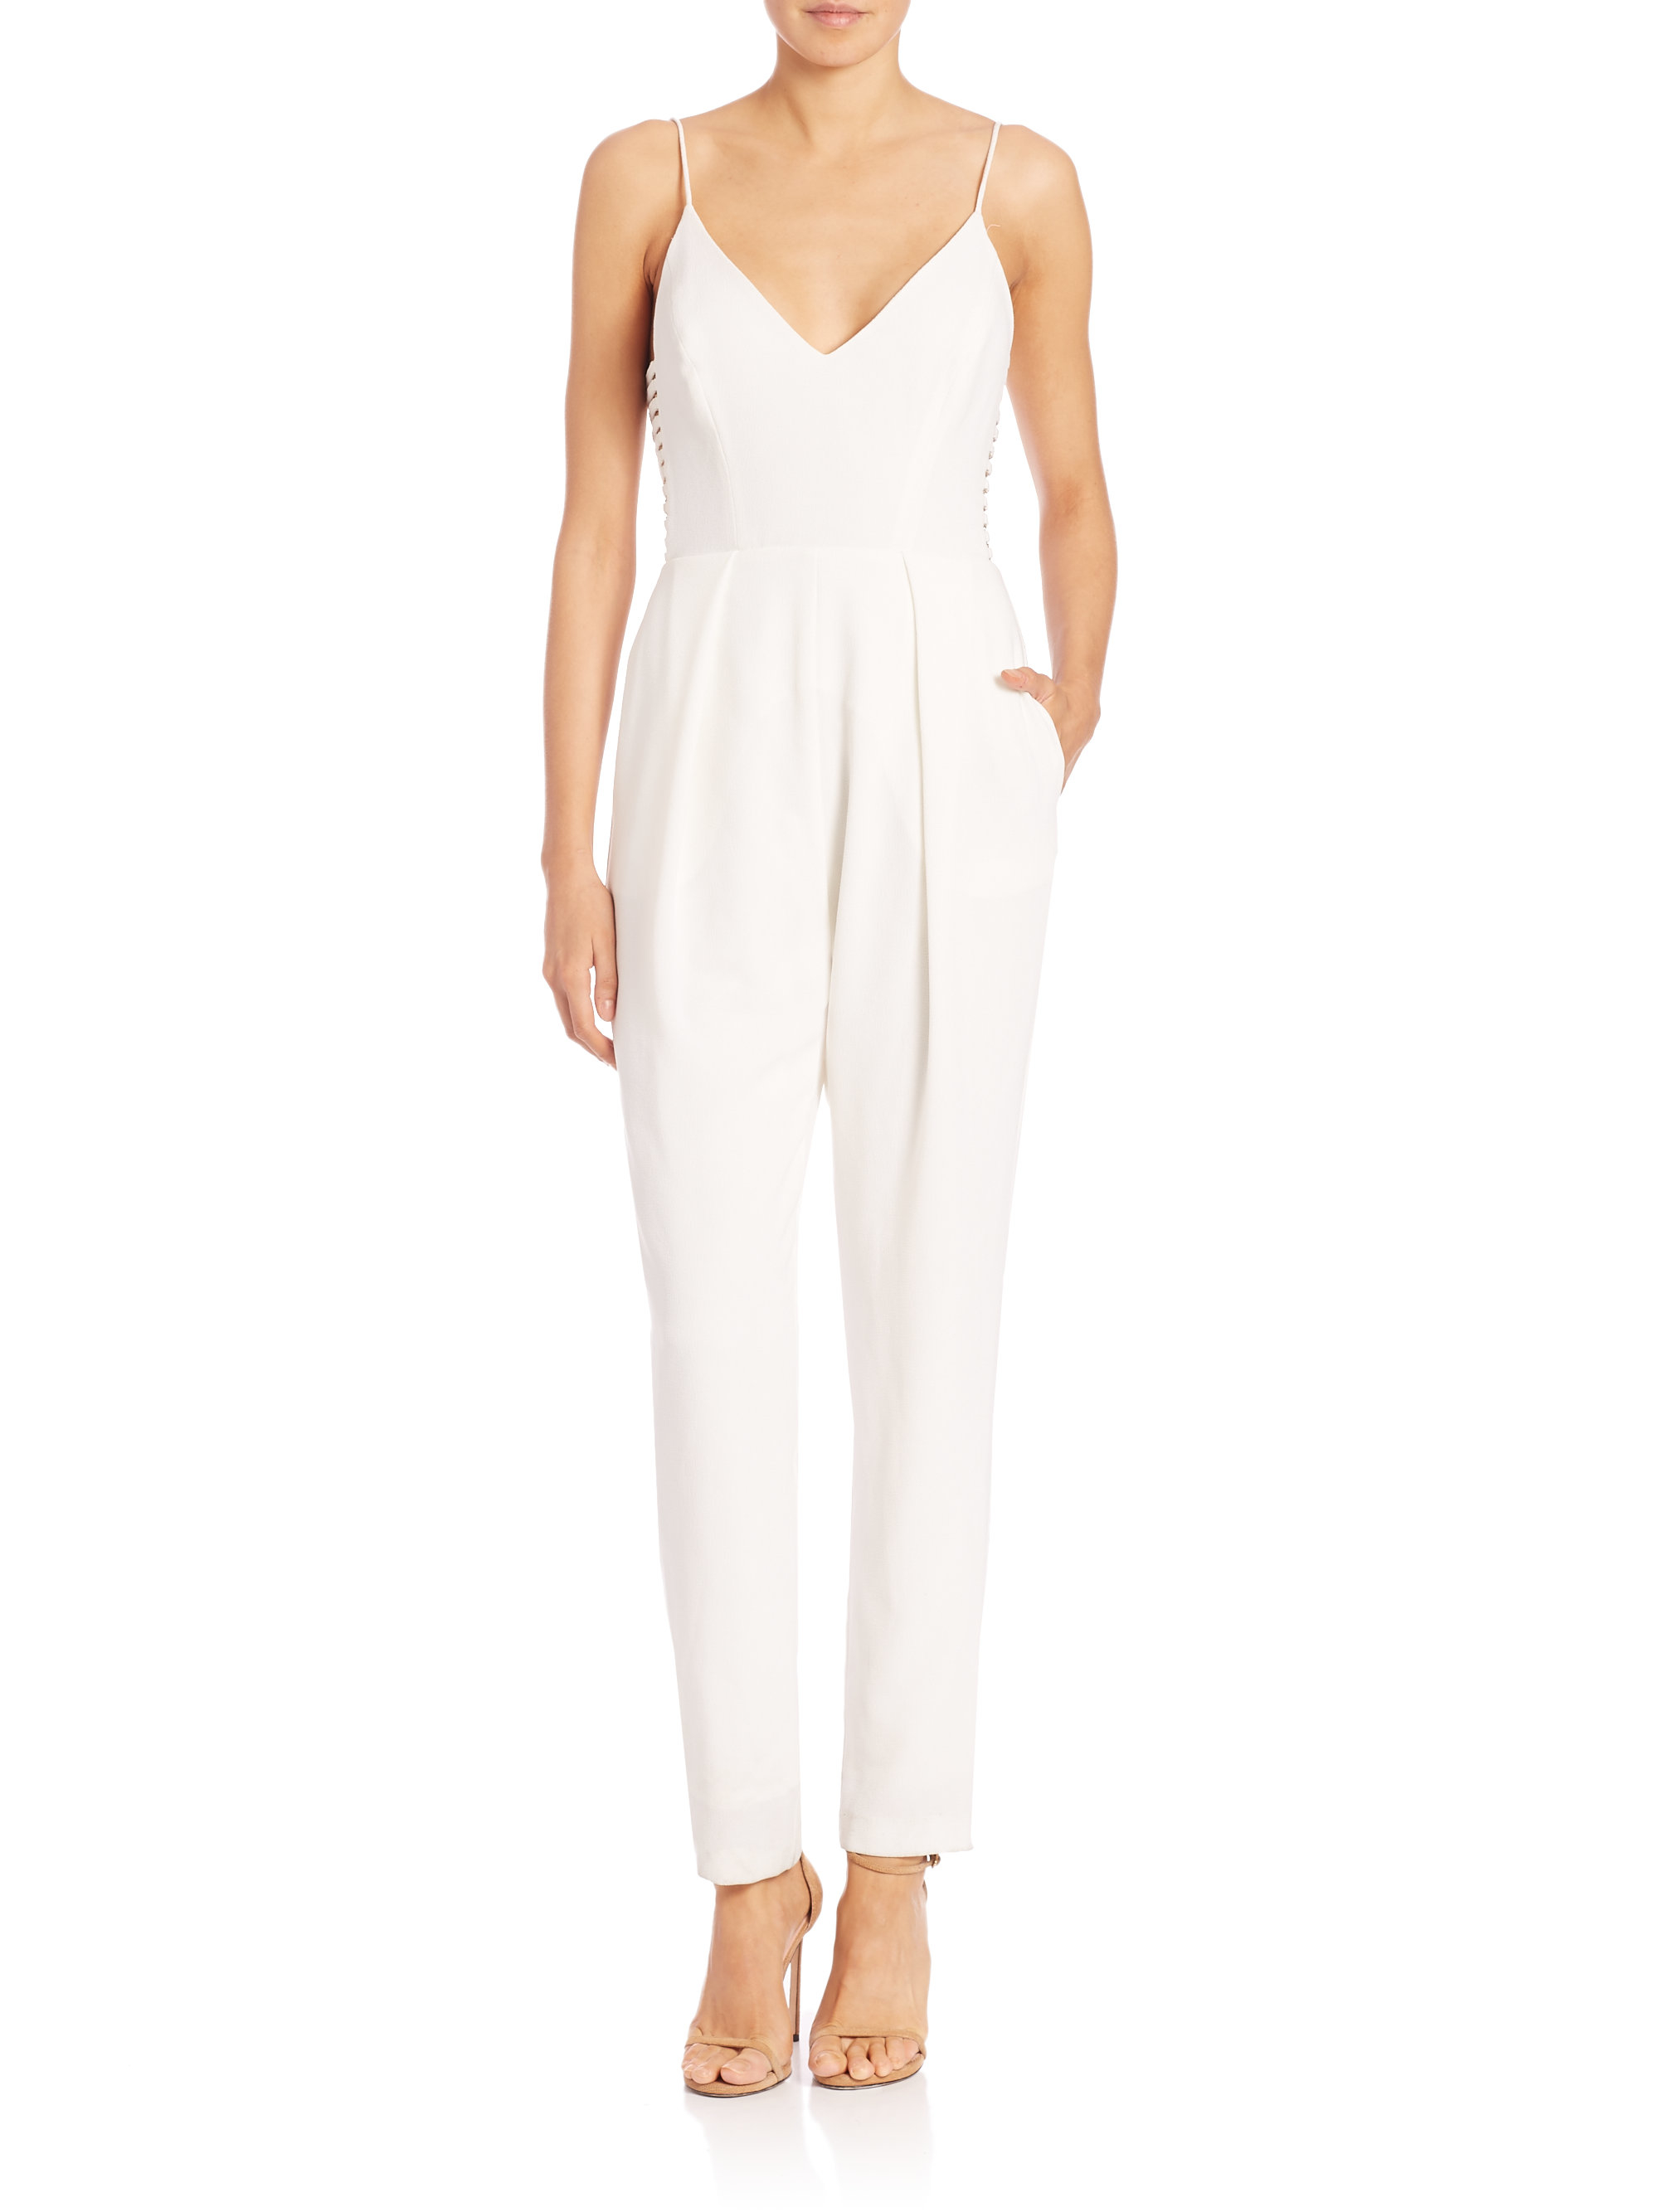 ce699aec163 Lyst - Zimmermann Crepe Harness Jumpsuit in White